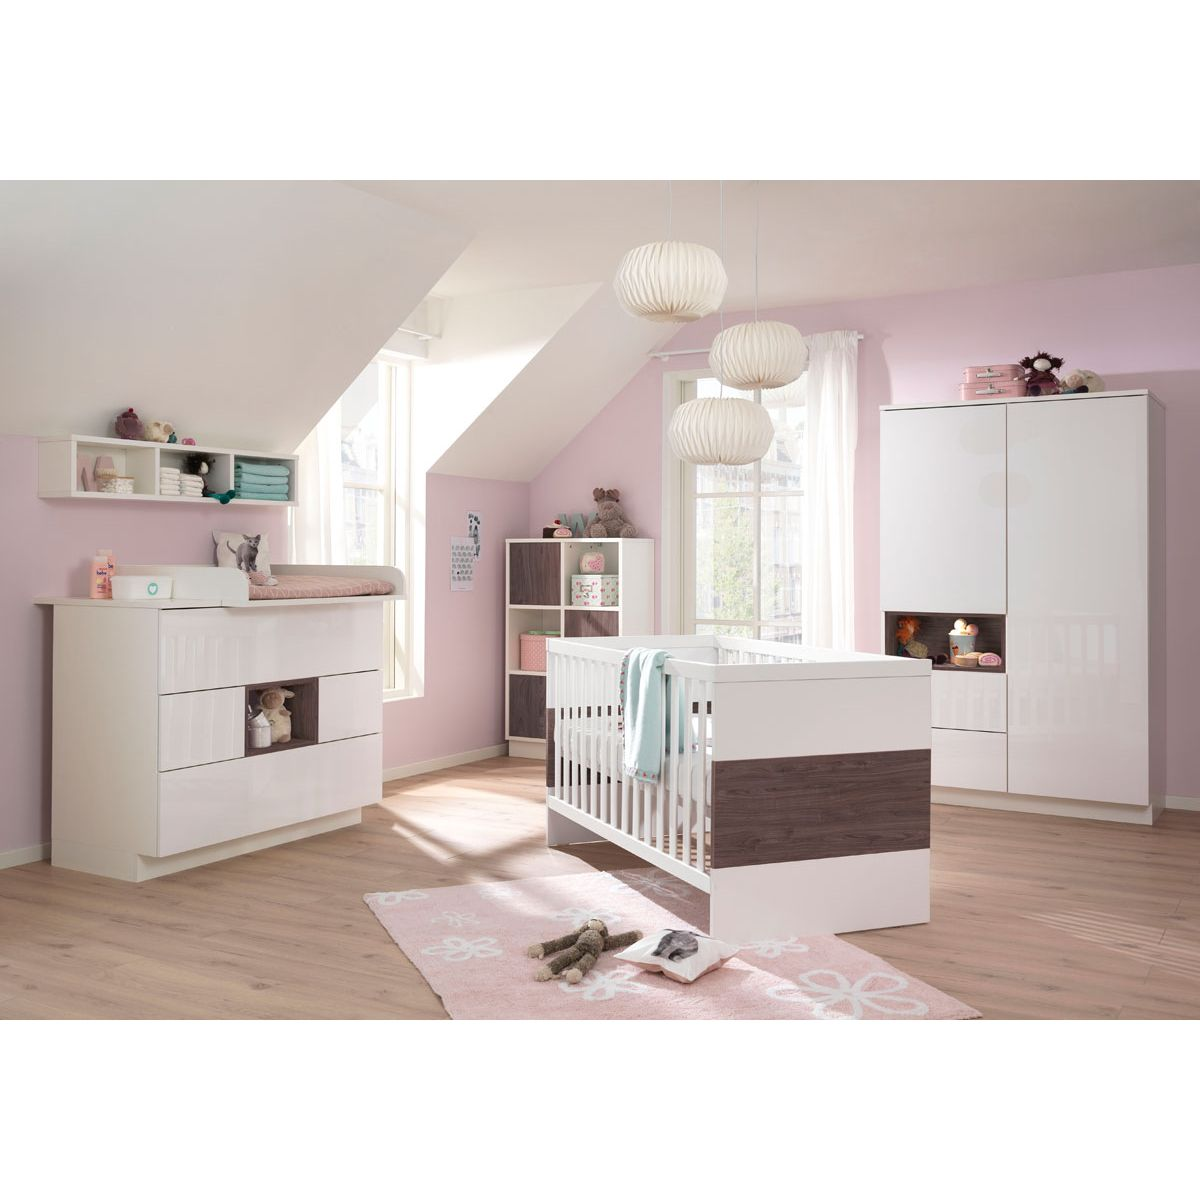 welle malie individuell konfigurieren babyonlineshop. Black Bedroom Furniture Sets. Home Design Ideas